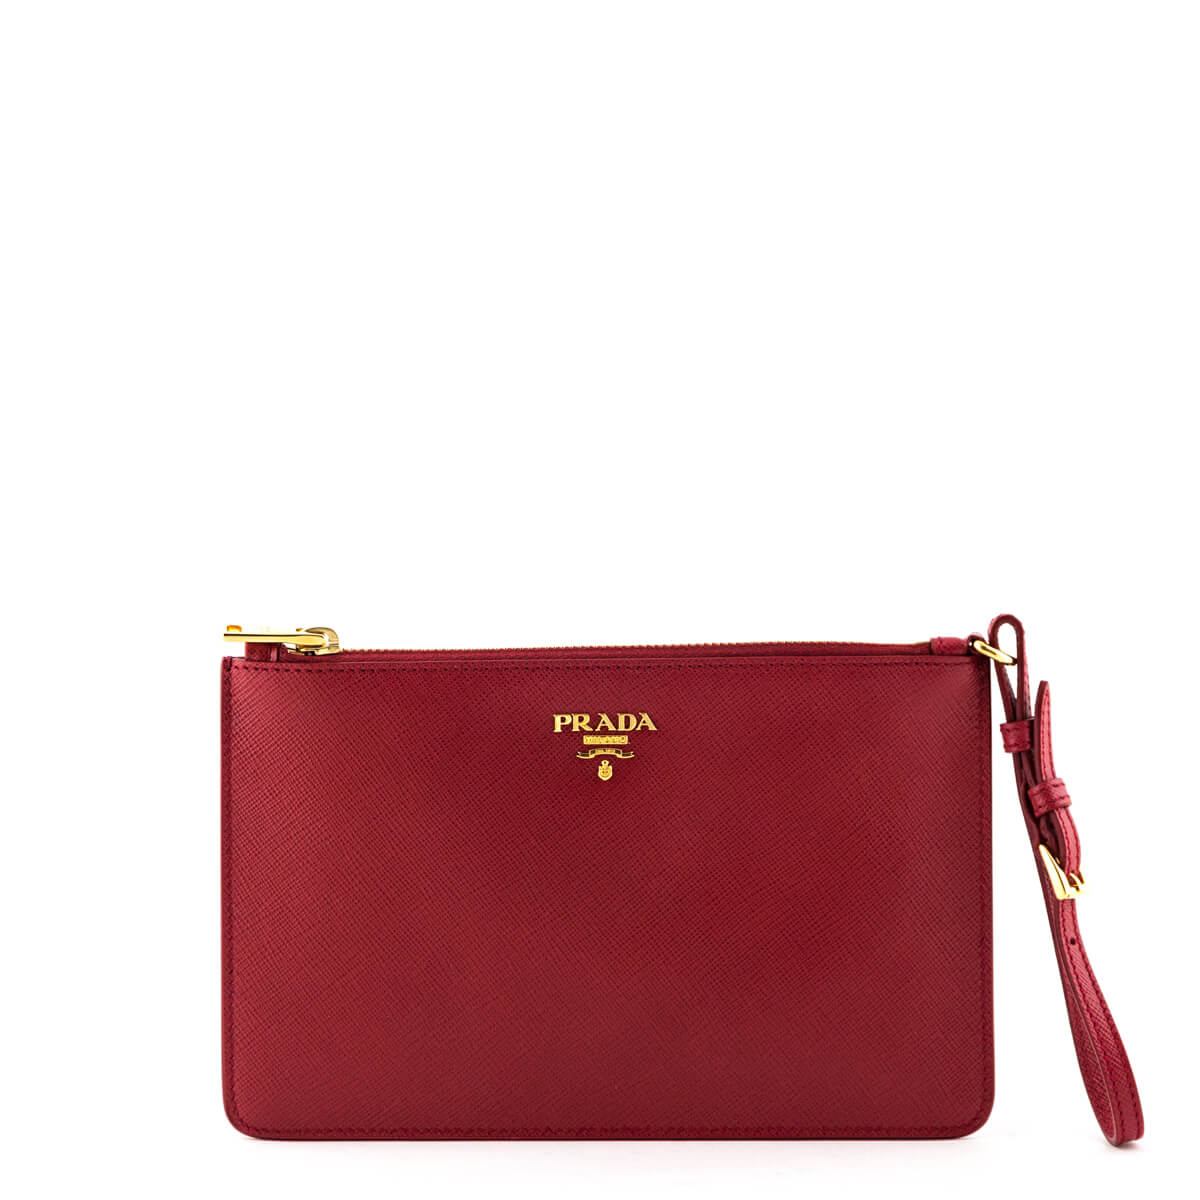 9ac286137731 Prada Red Saffiano Flat Zip Wristlet Clutch - LOVE that BAG - Preowned  Authentic Designer Handbags ...